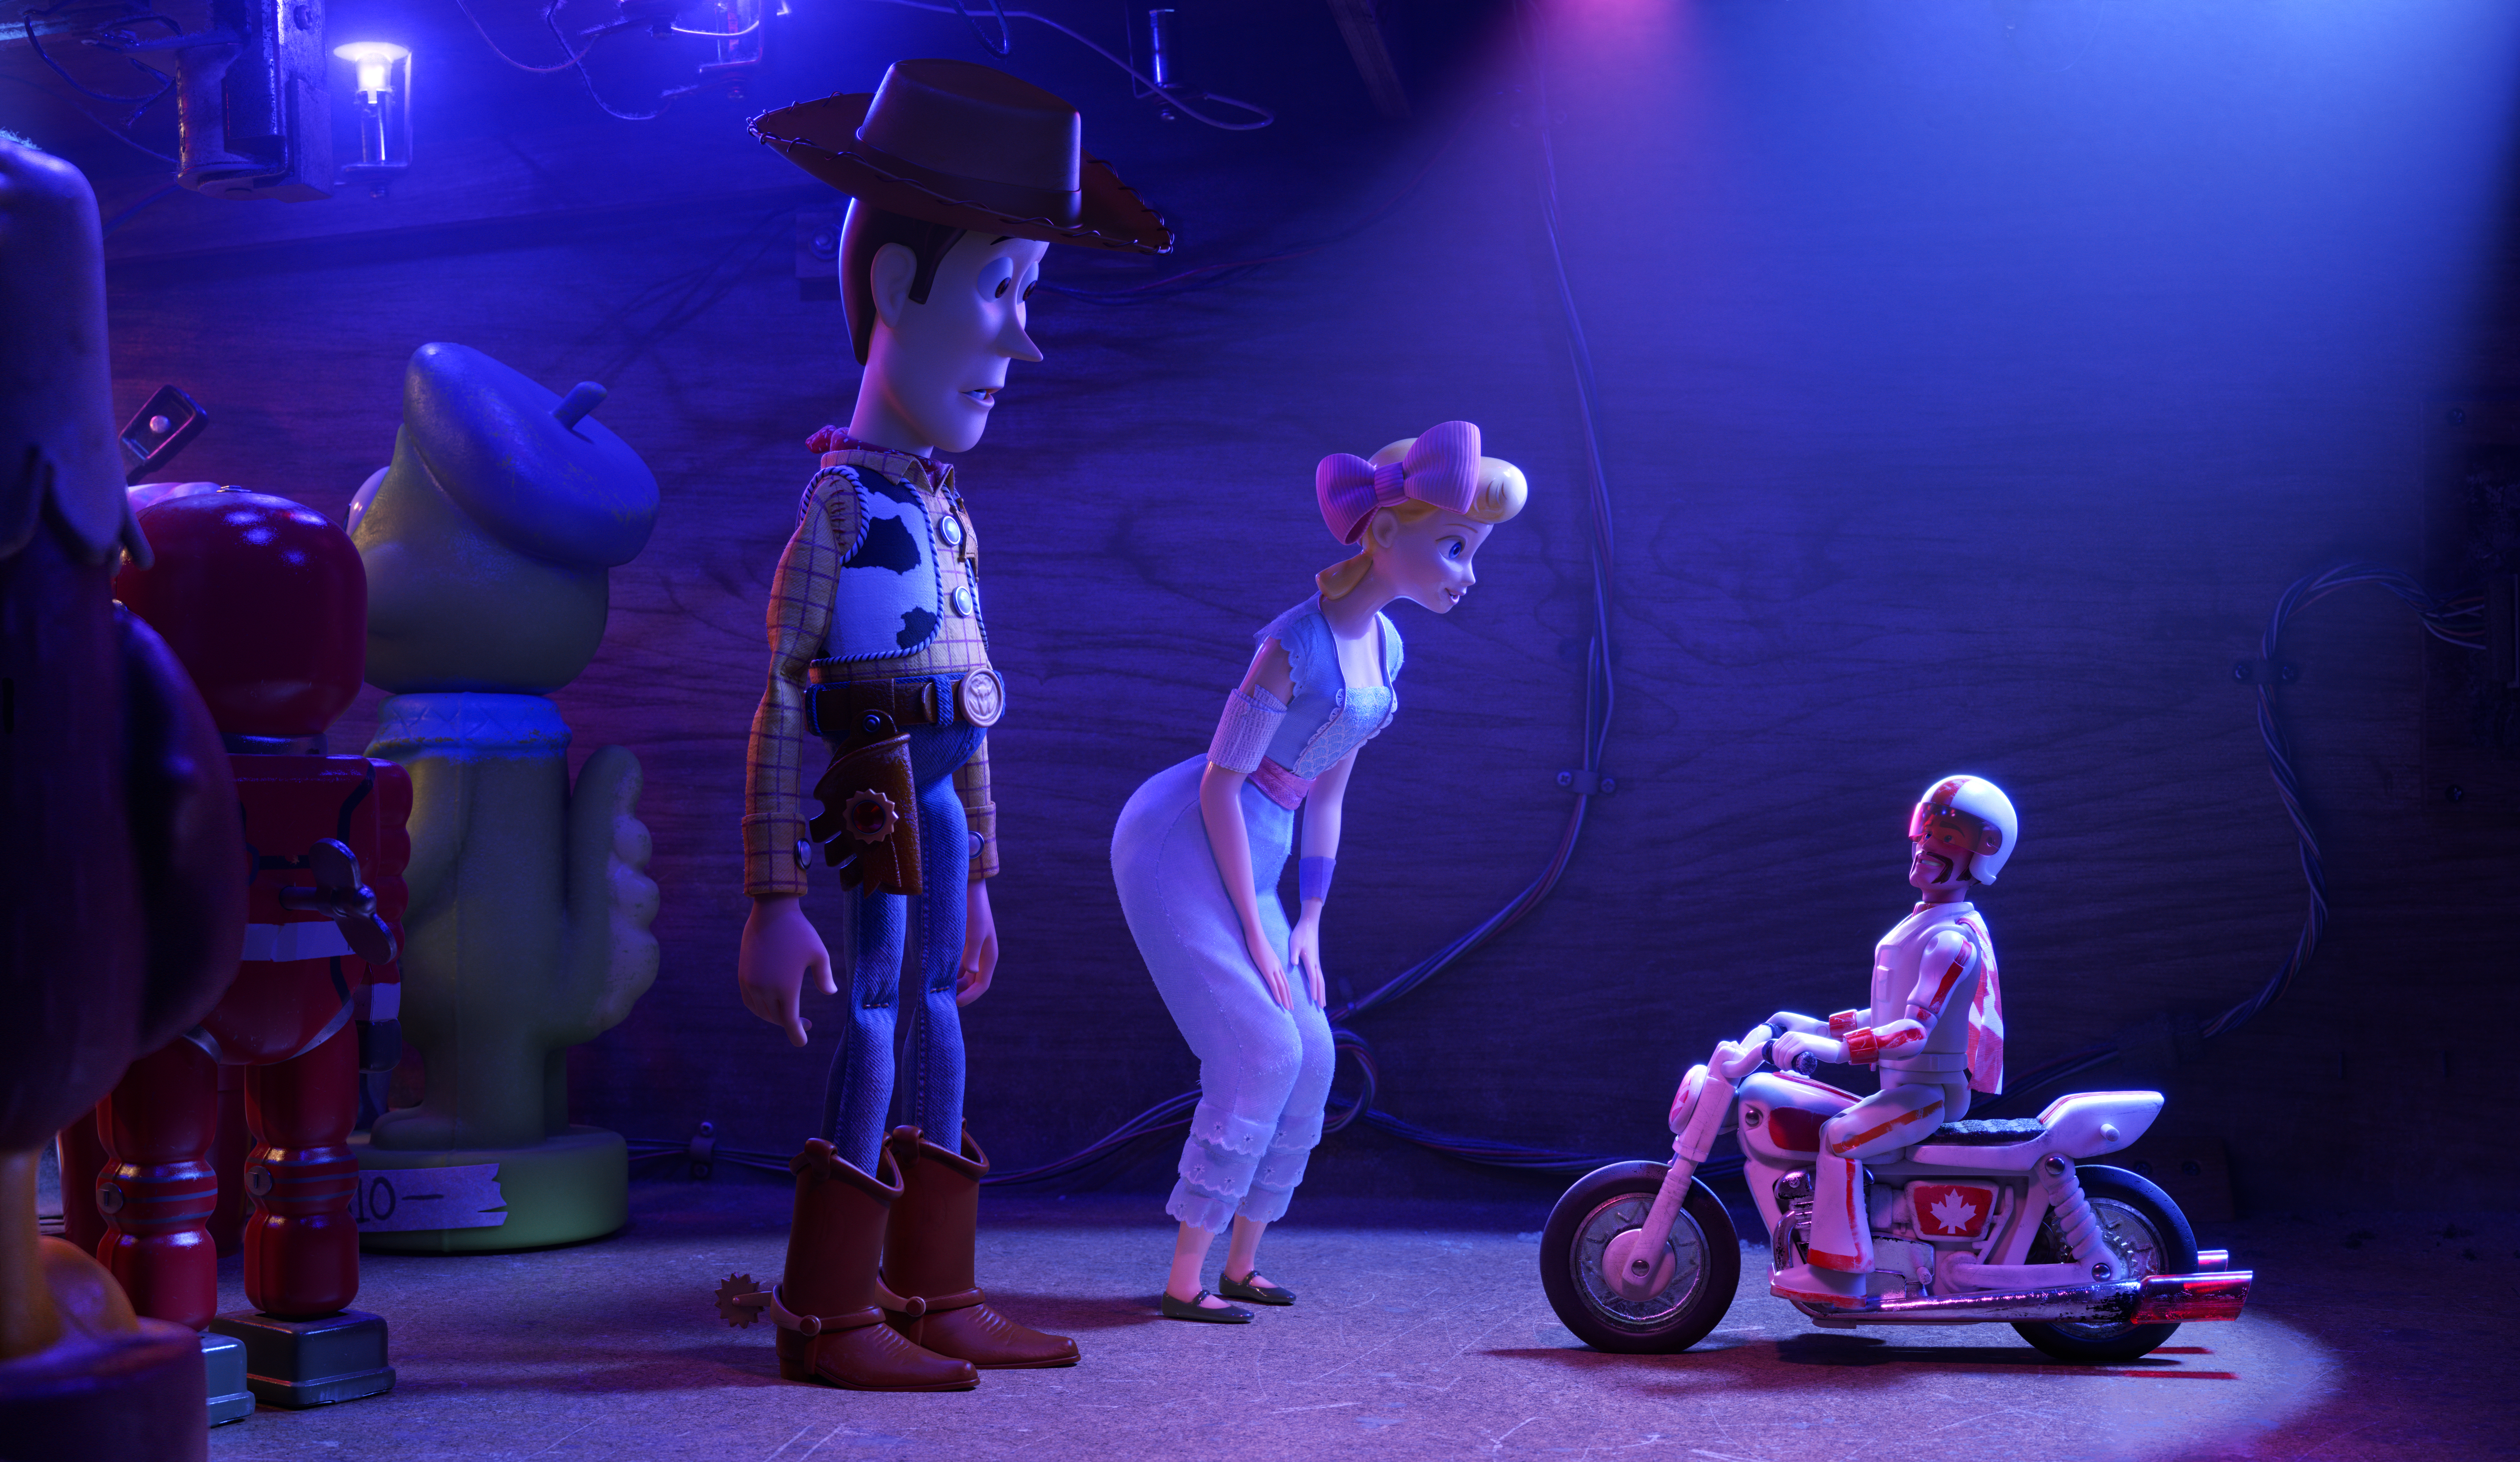 Tom Hanks as the voice of Woody, Annie Potts as the voice of Bo Peep, and Keanu Reeves as the voice of Duke Caboom in Toy Story 4